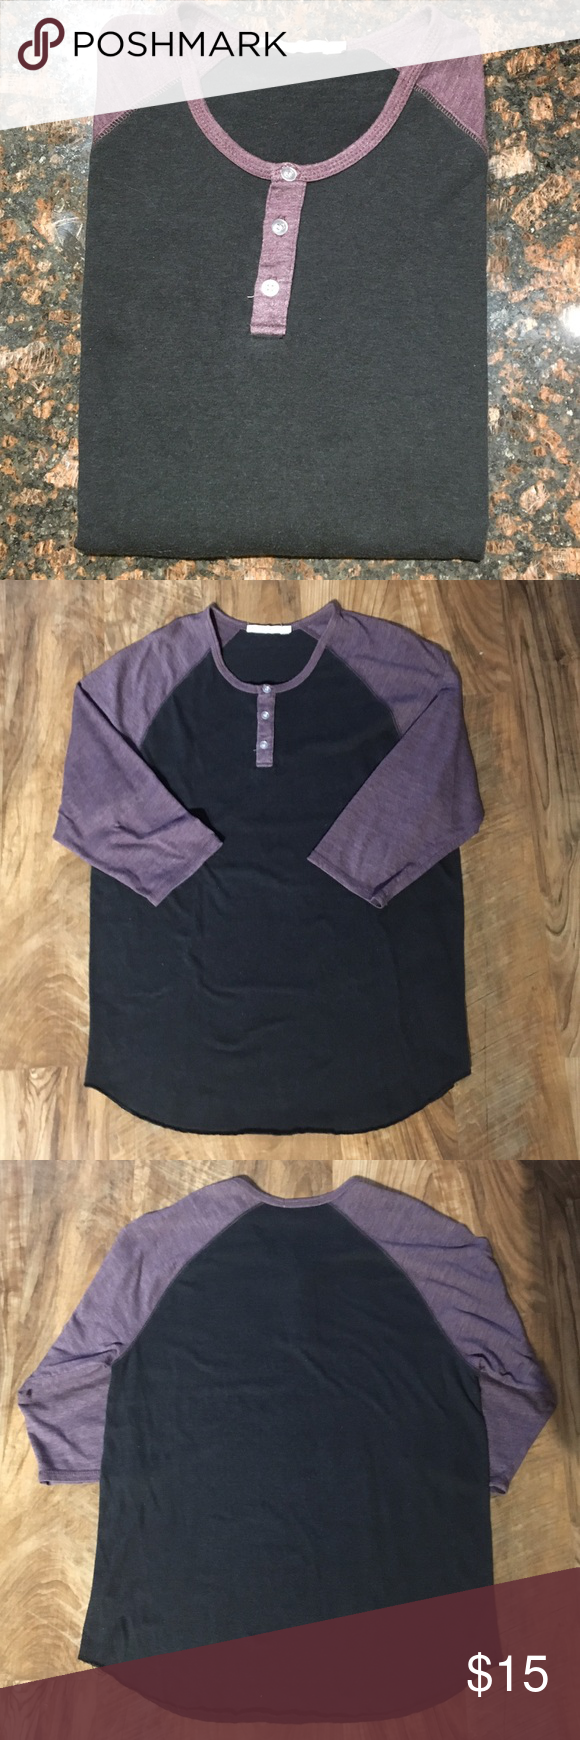 Alternative 3/4 Sleeve Raglan Henley 50% polyester, 38% cotton, 12% rayon. Excellent condition, no flaws. Alternative Shirts Tees - Long Sleeve